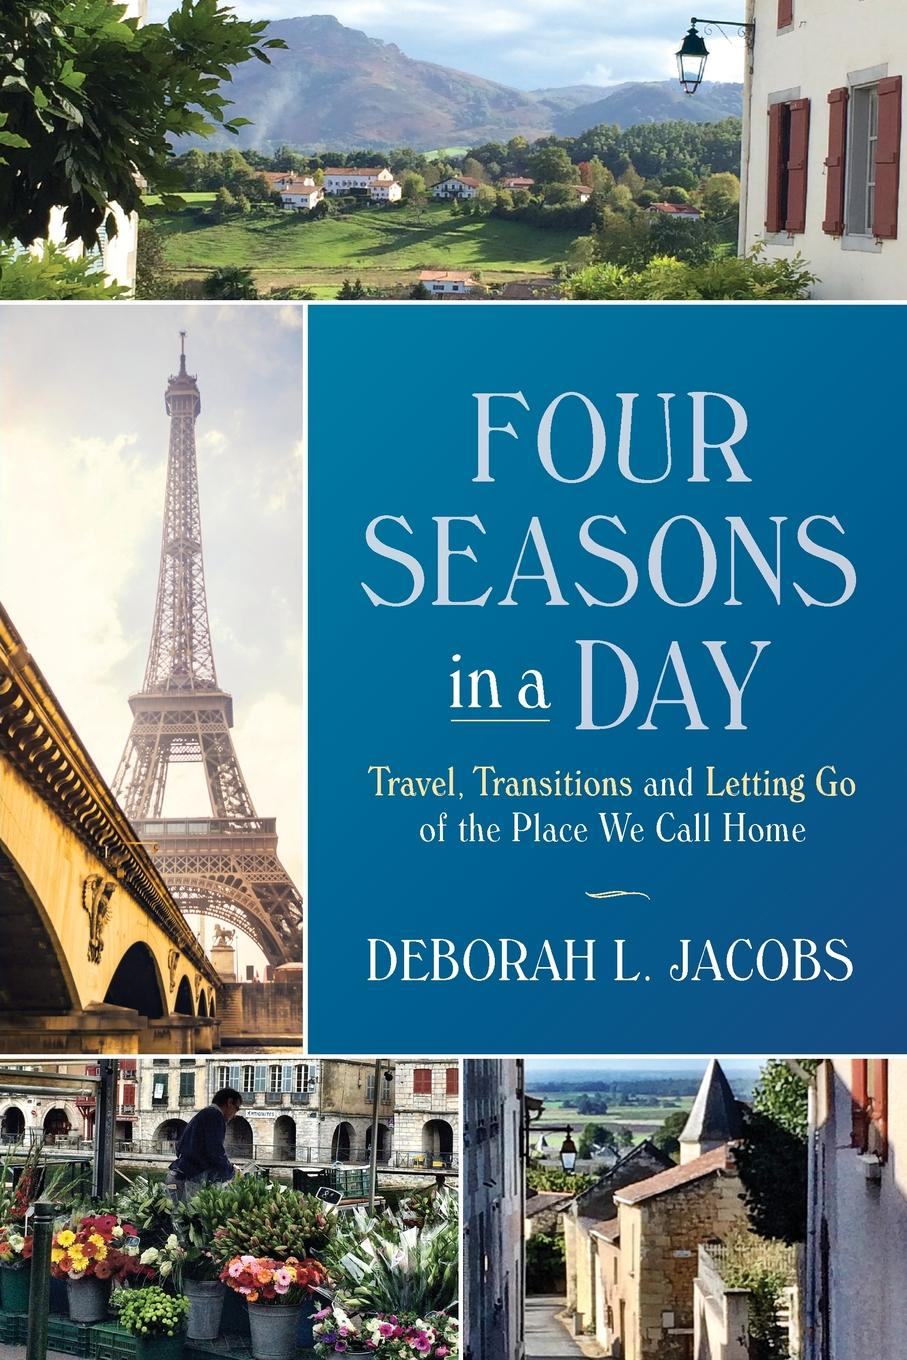 Deborah L Jacobs Four Seasons in a Day. Travel, Transitions and Letting Go of the Place We Call Home